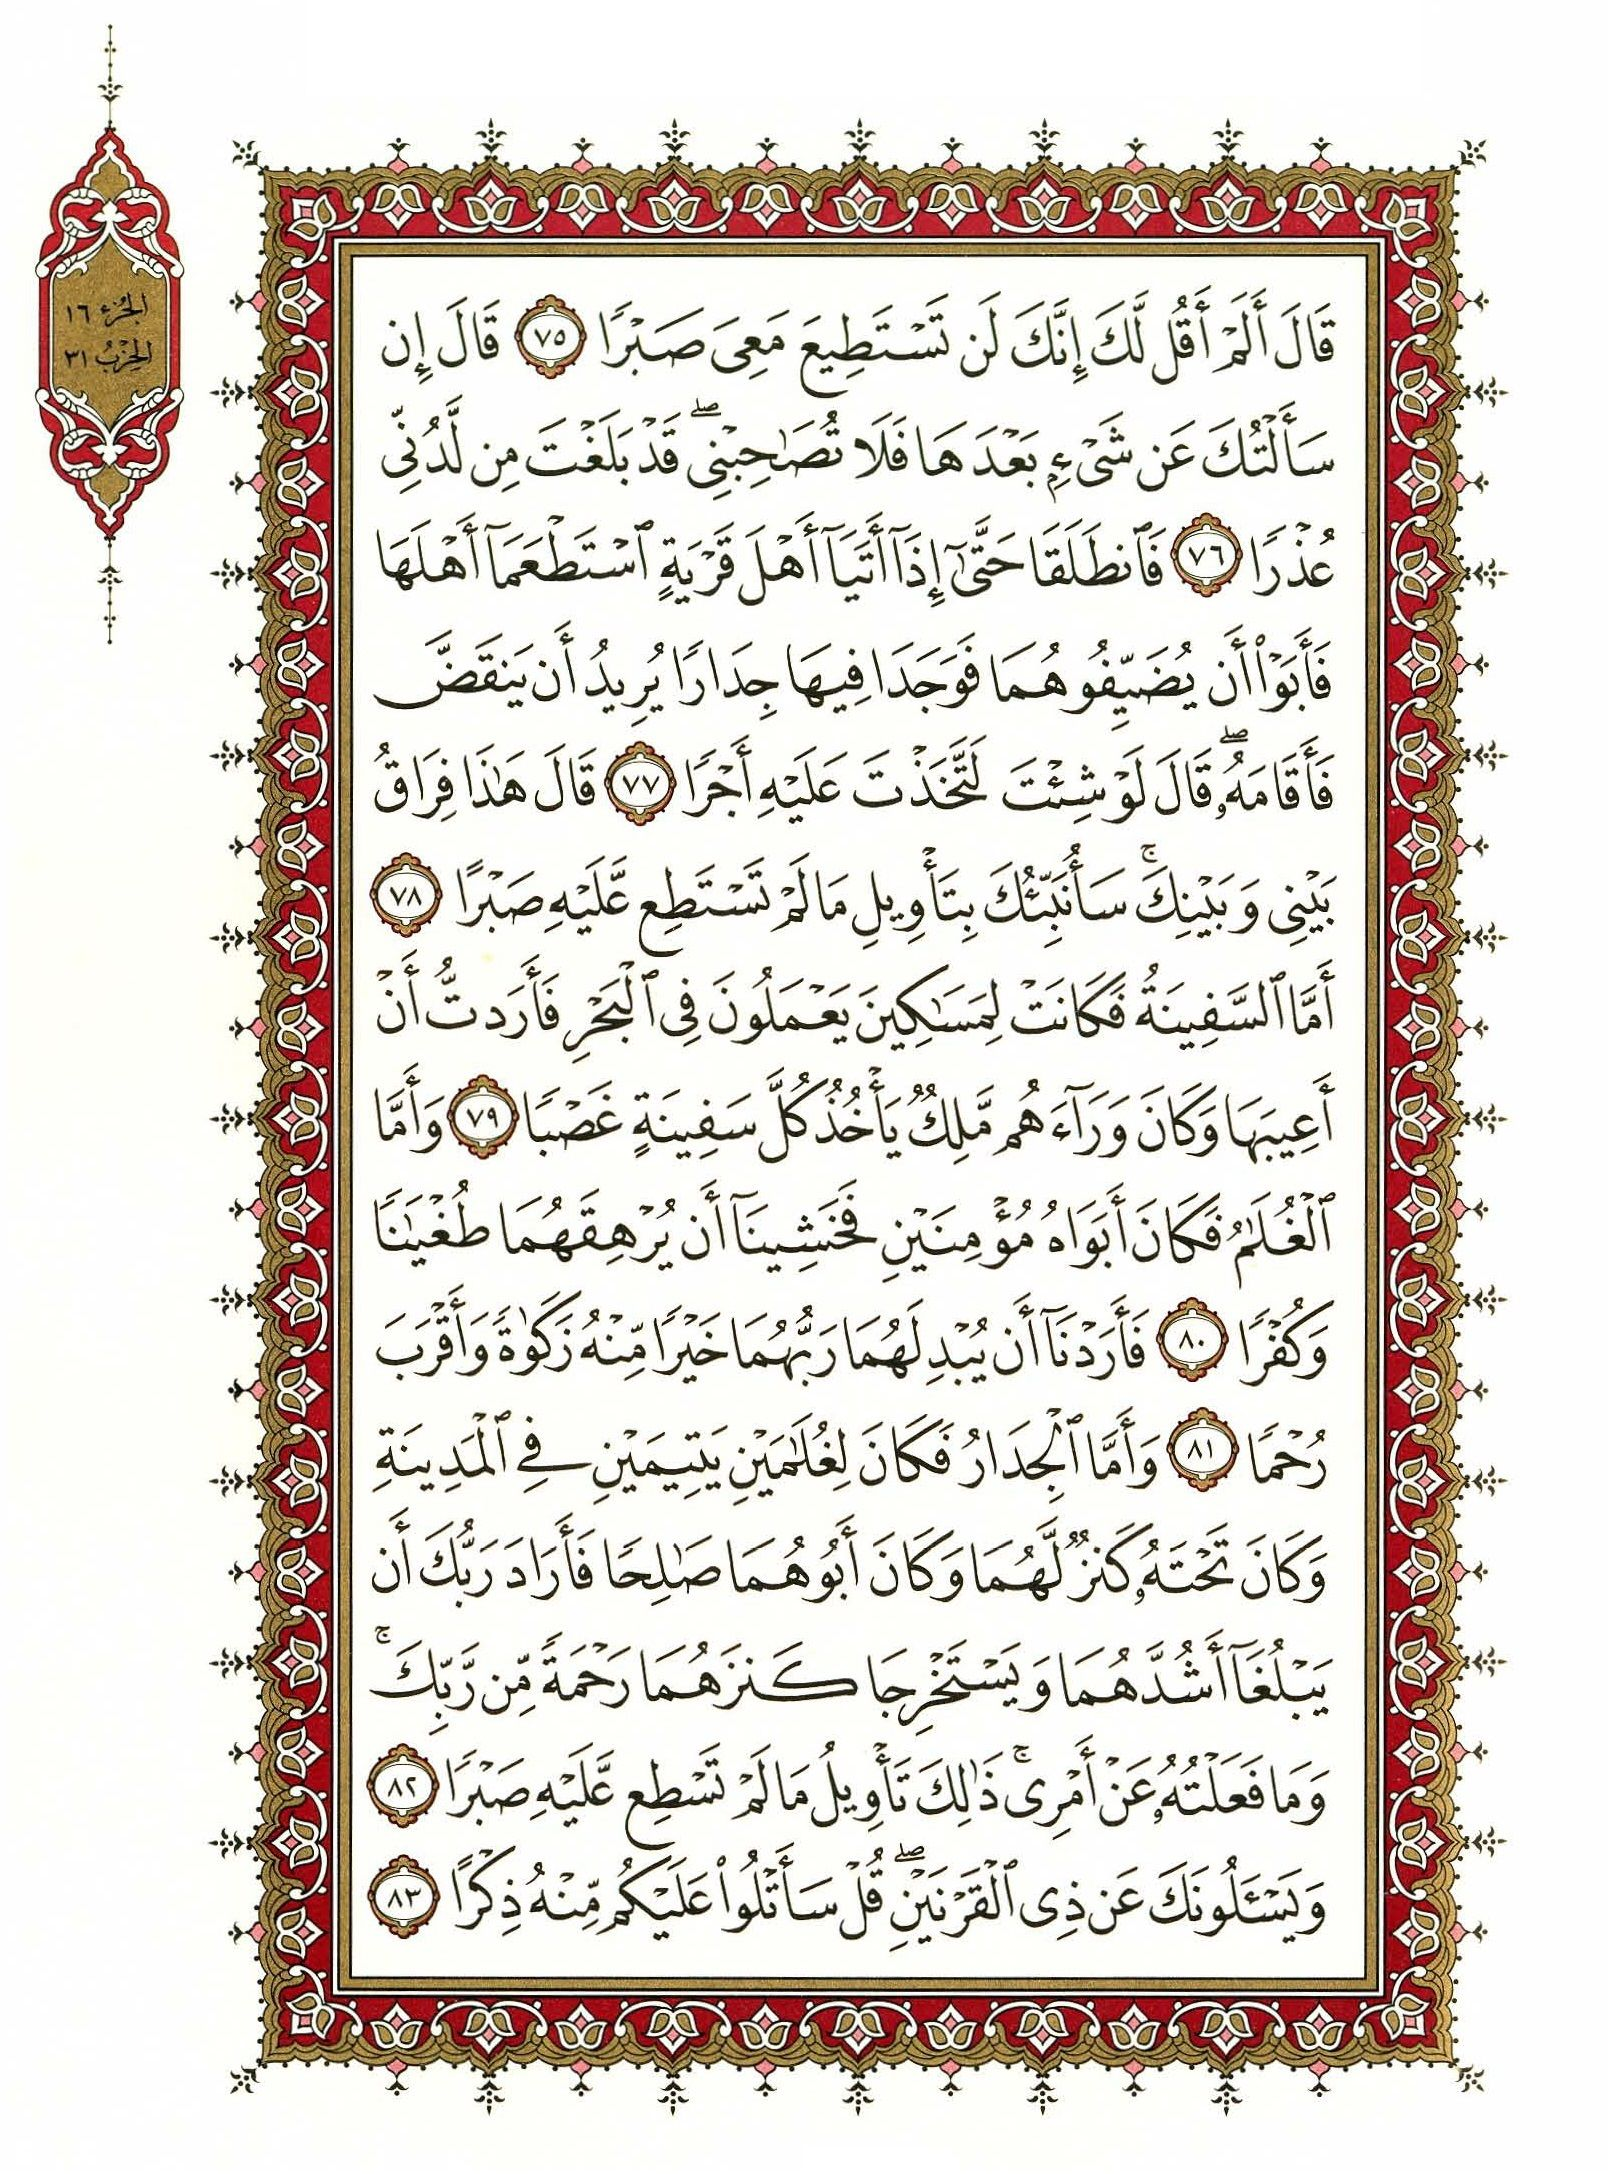 Pin By القران الكريم The Holy Quran On سورة الكهف Word Search Puzzle Words Word Search